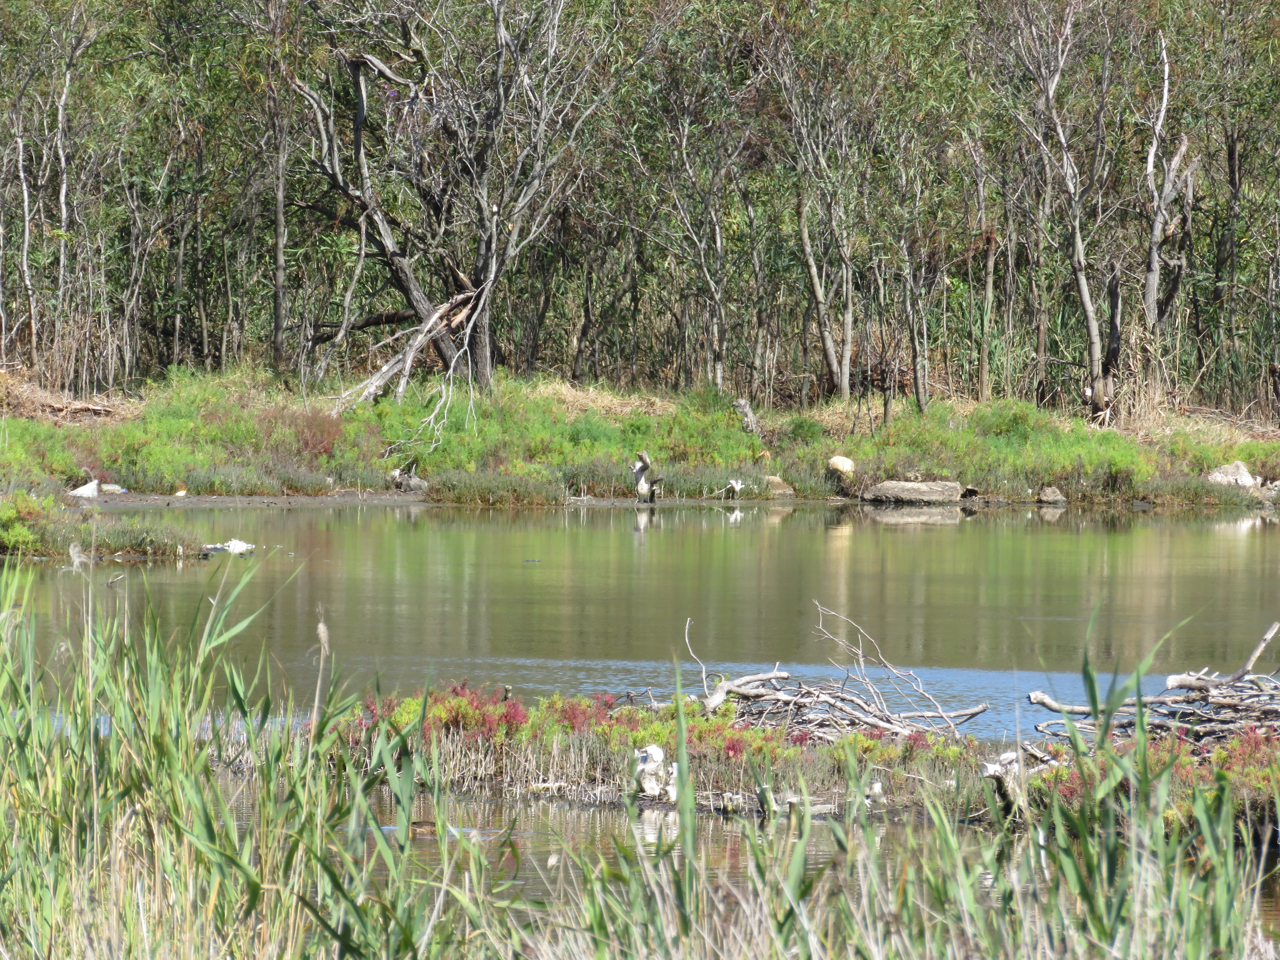 Landing Lights Wetland threatened | SAVING OUR TREES